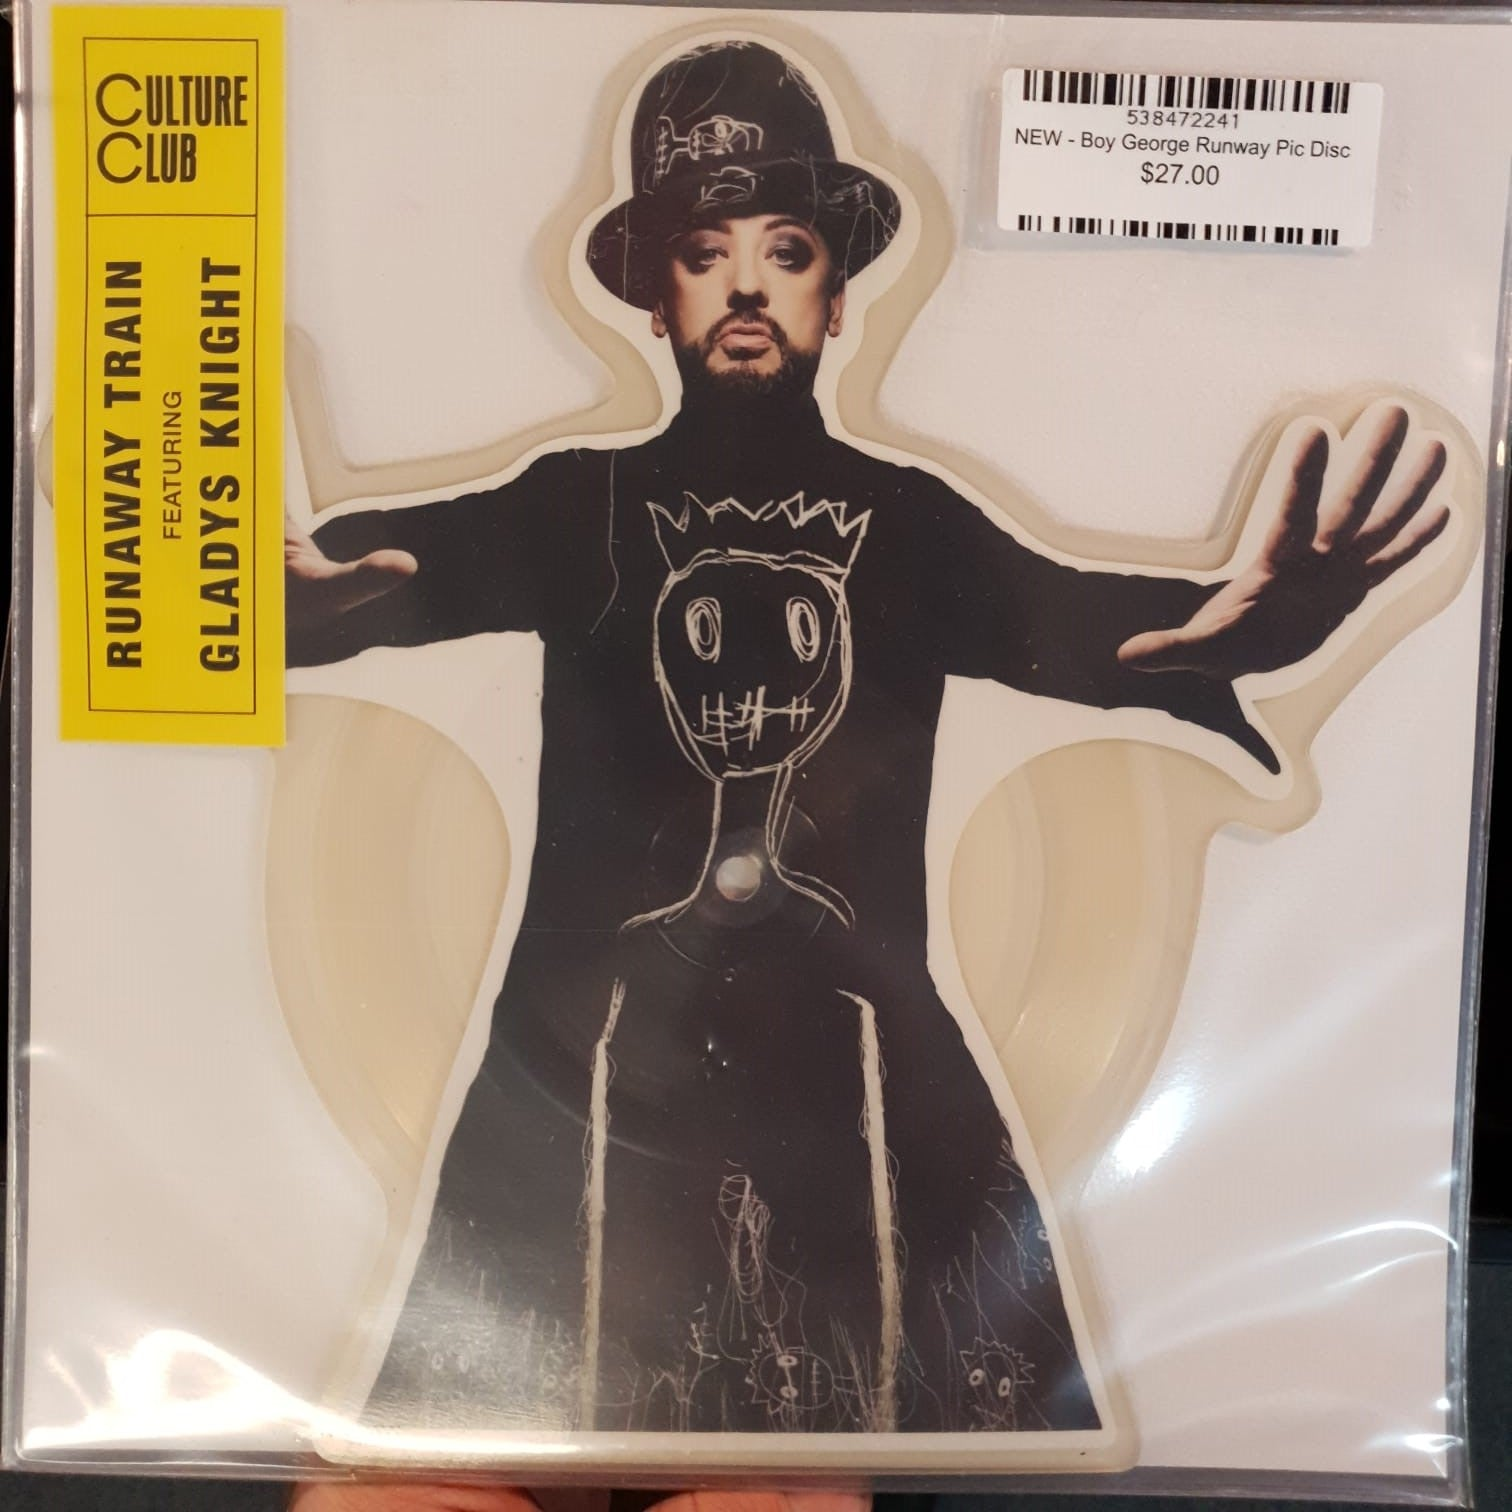 NEW - Boy George and Culture Club, Runway Train Picture Disc